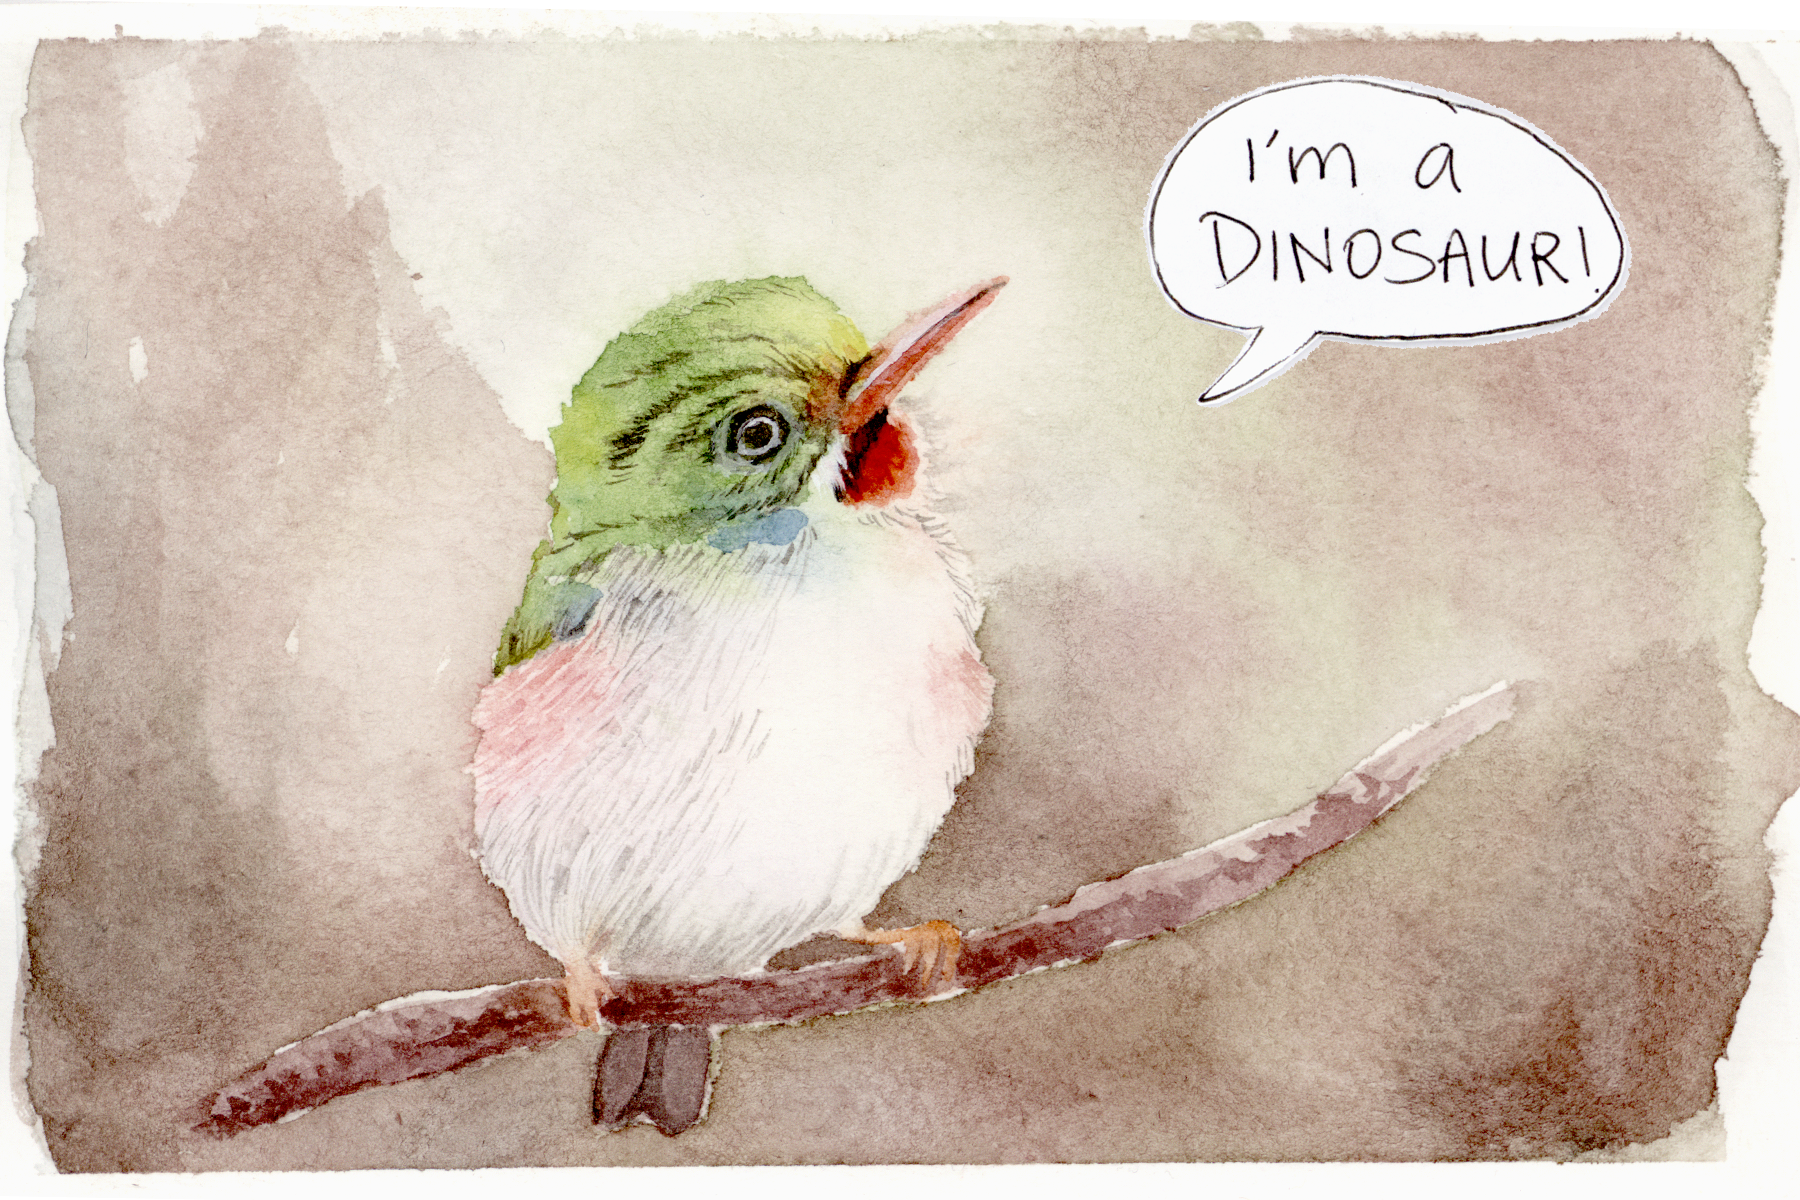 Birds are dinos, too!